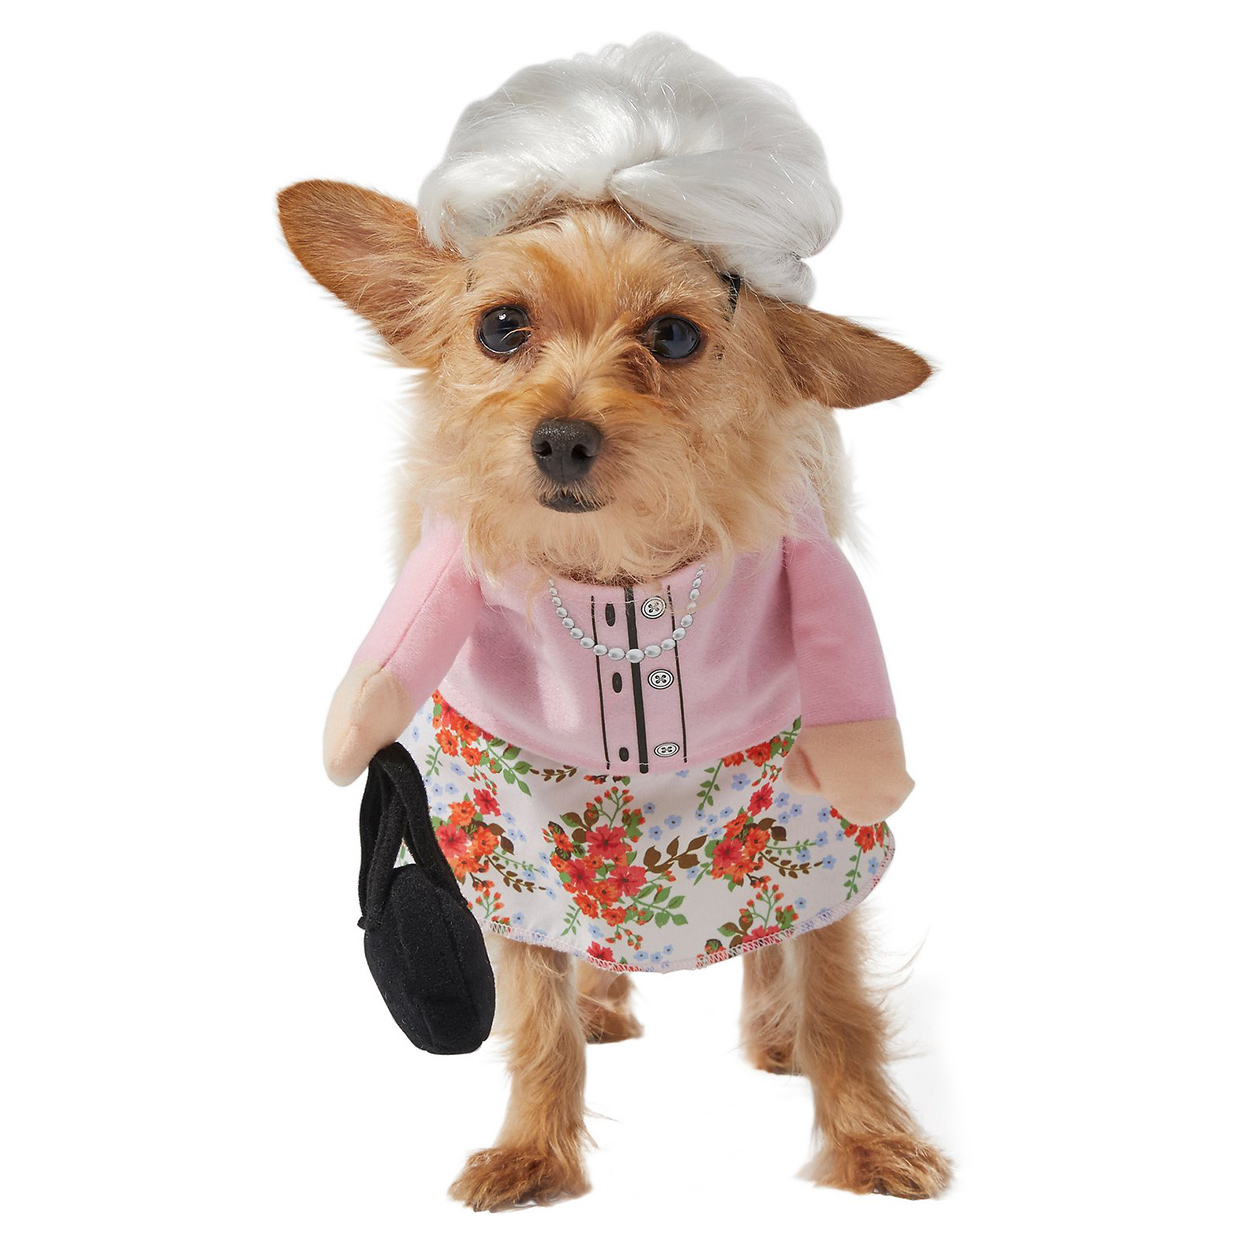 Dog wearing the FRISCO Front Walking Granny Dog & Cat Costume on a white background